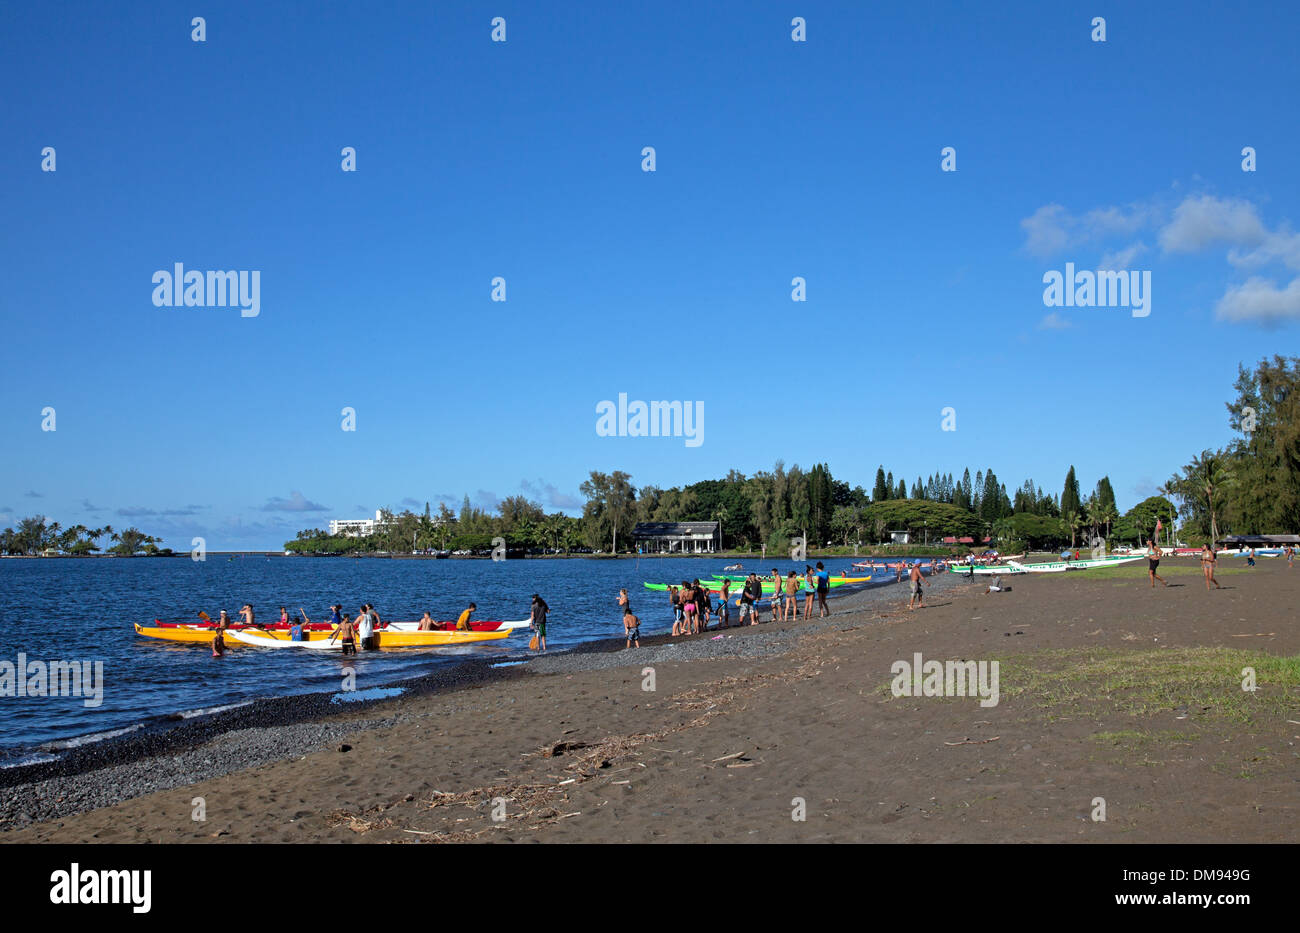 Gathering of local canoe clubs for practice time on Hilo Bay. - Stock Image